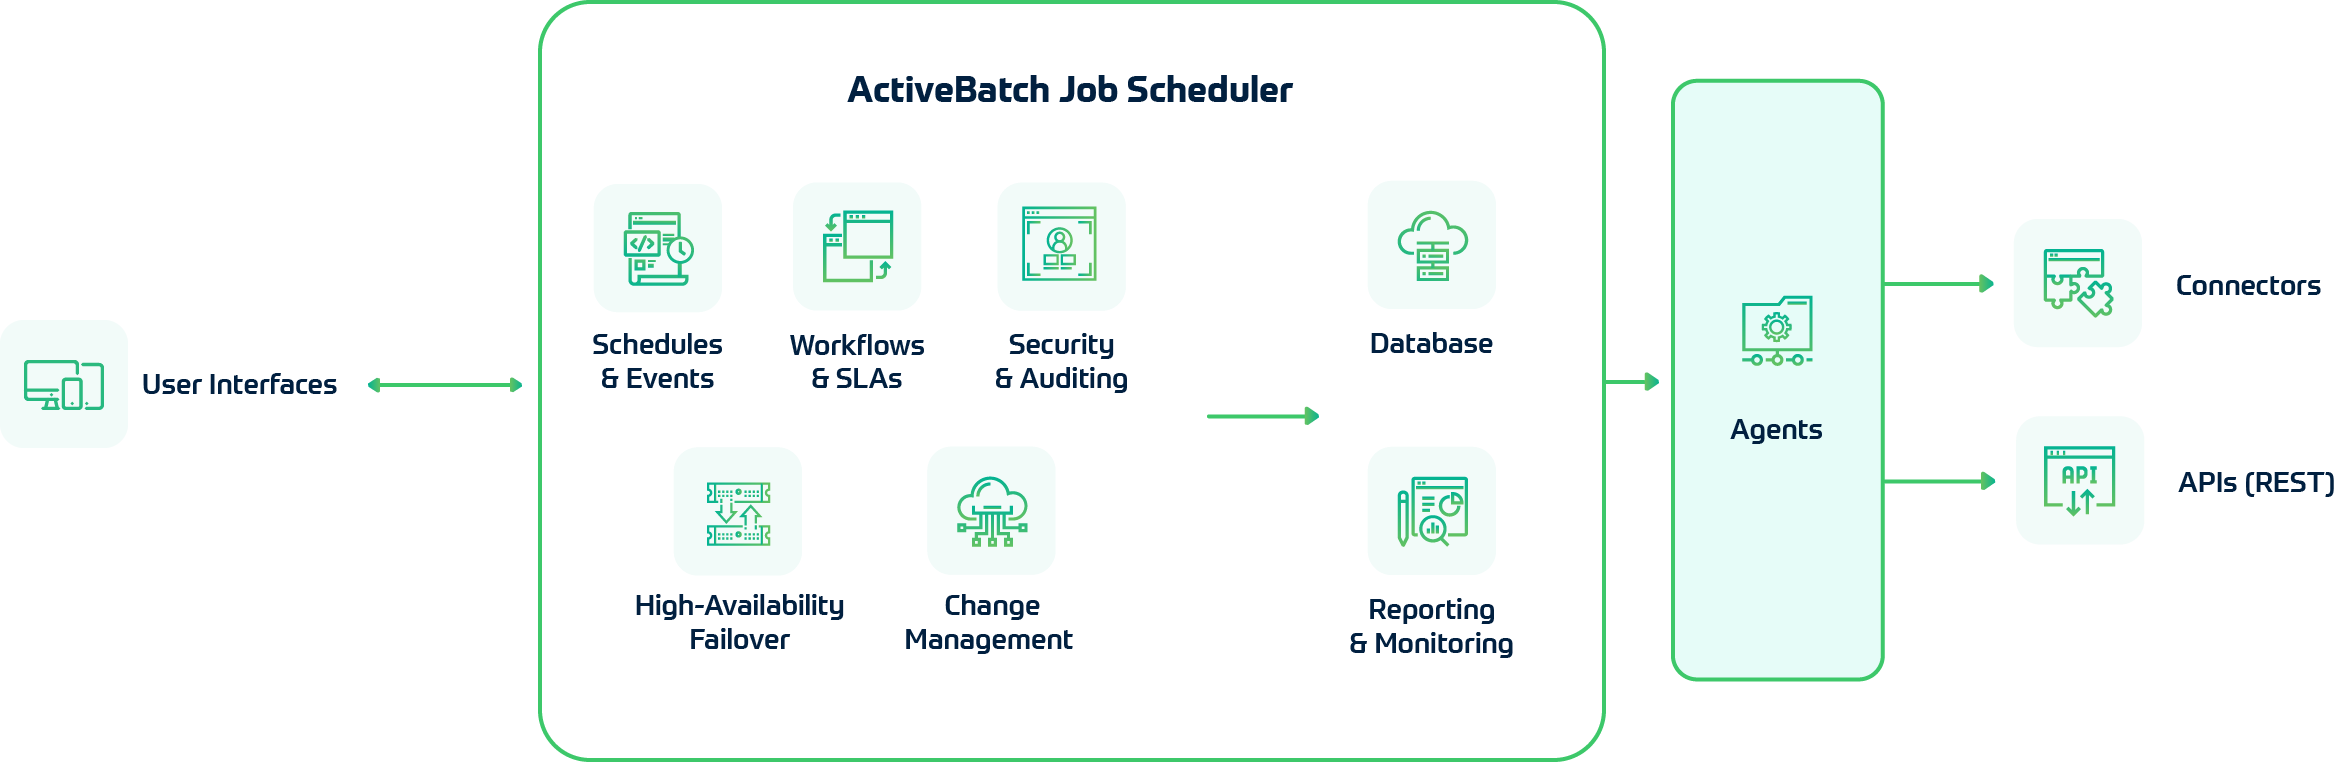 ActiveBatch Architecture Diagram